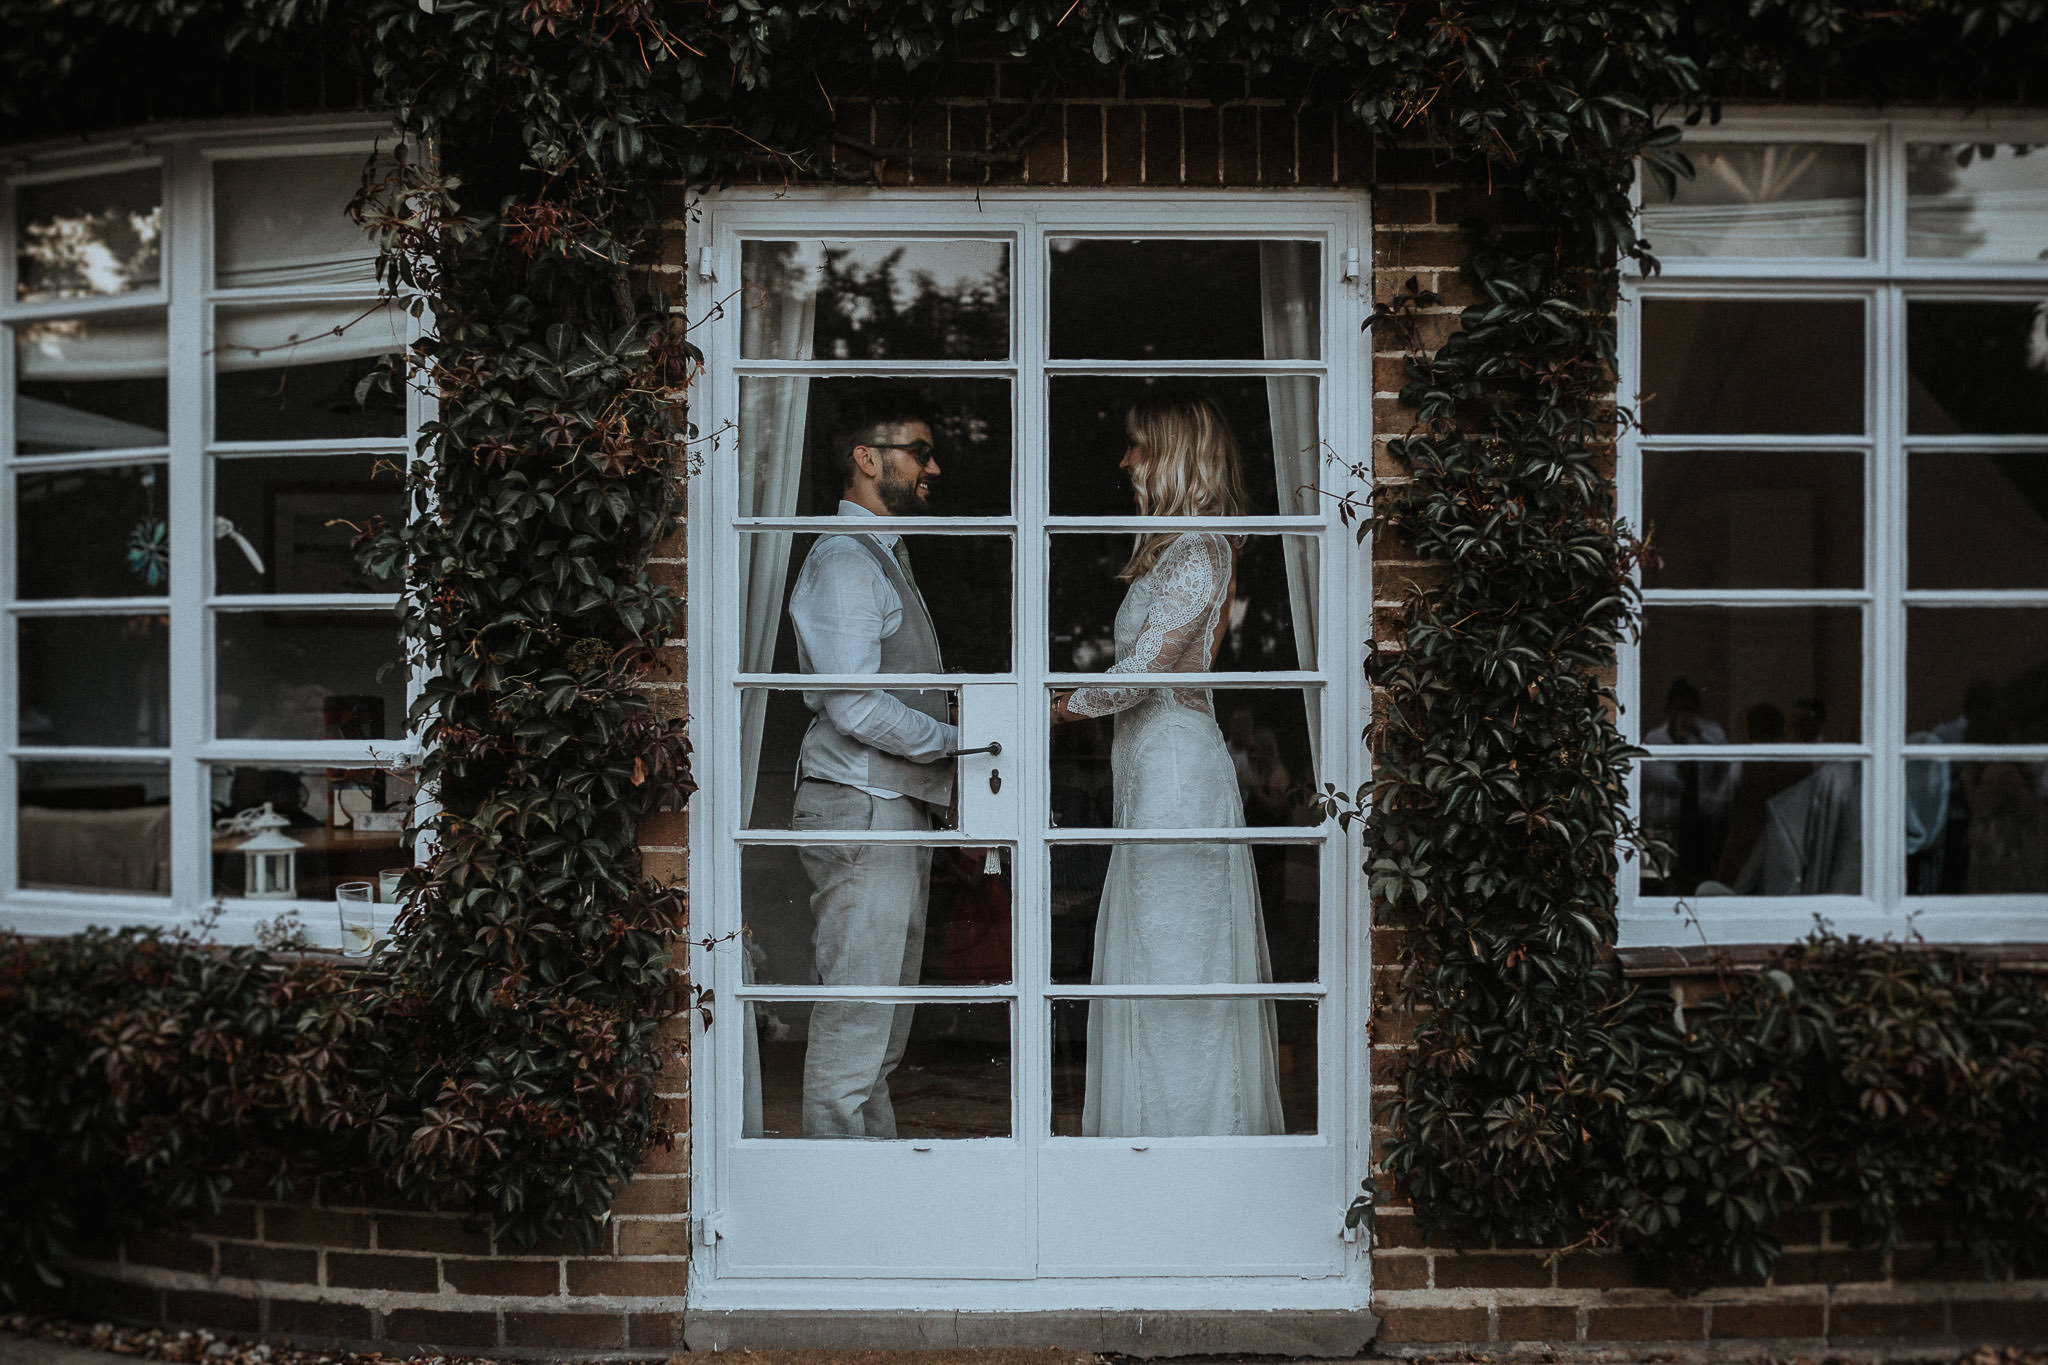 Lincolnshire_Alternative_Wedding_Photographer-73.jpg